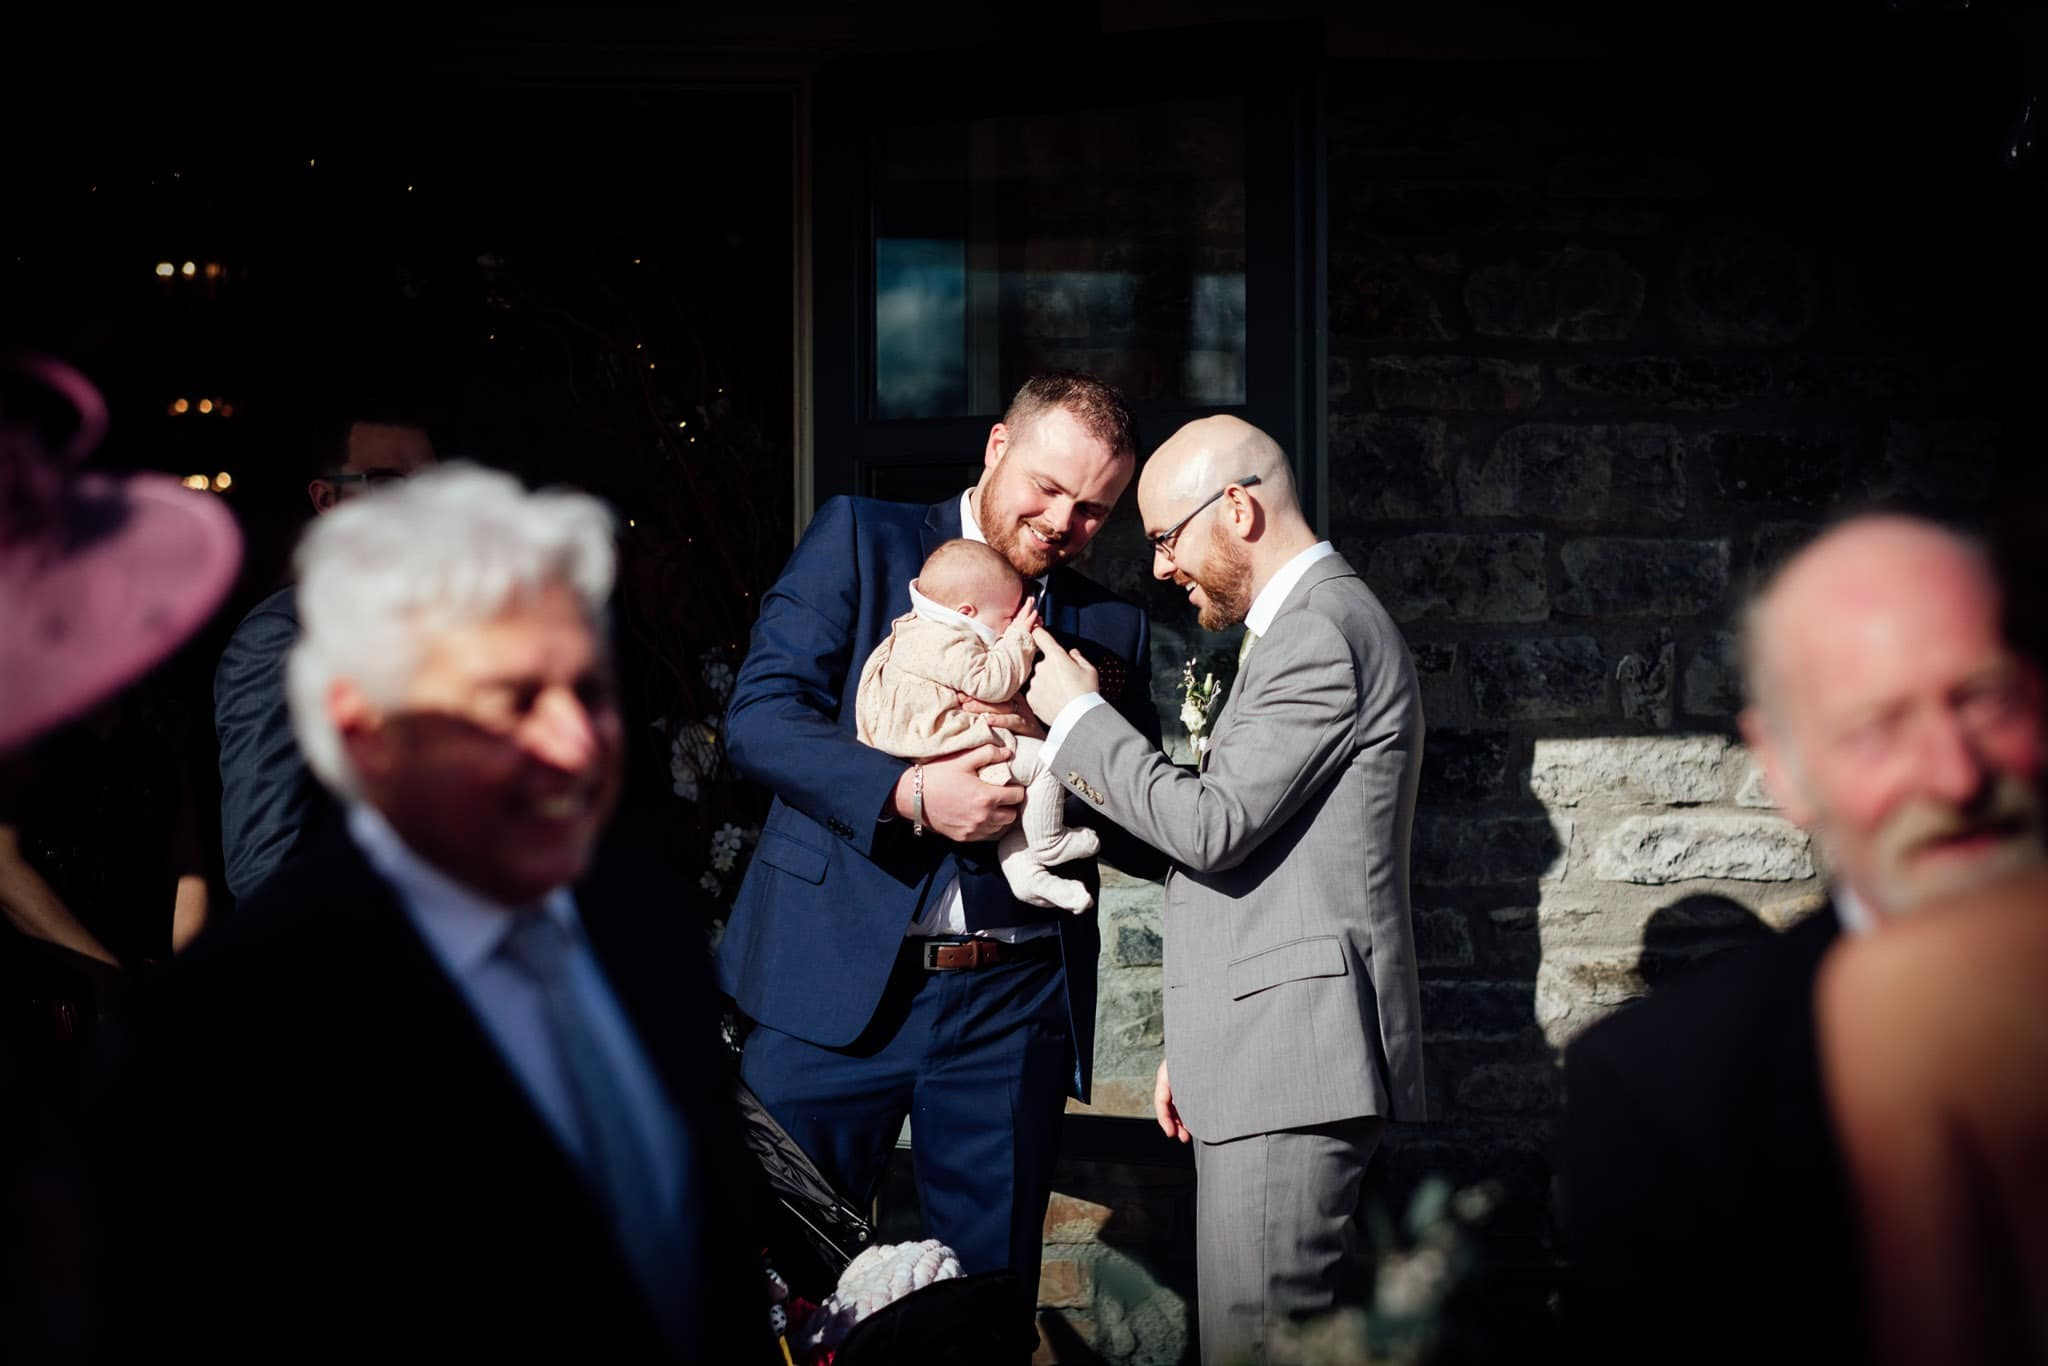 groom smiling at a baby outside the ceremony room